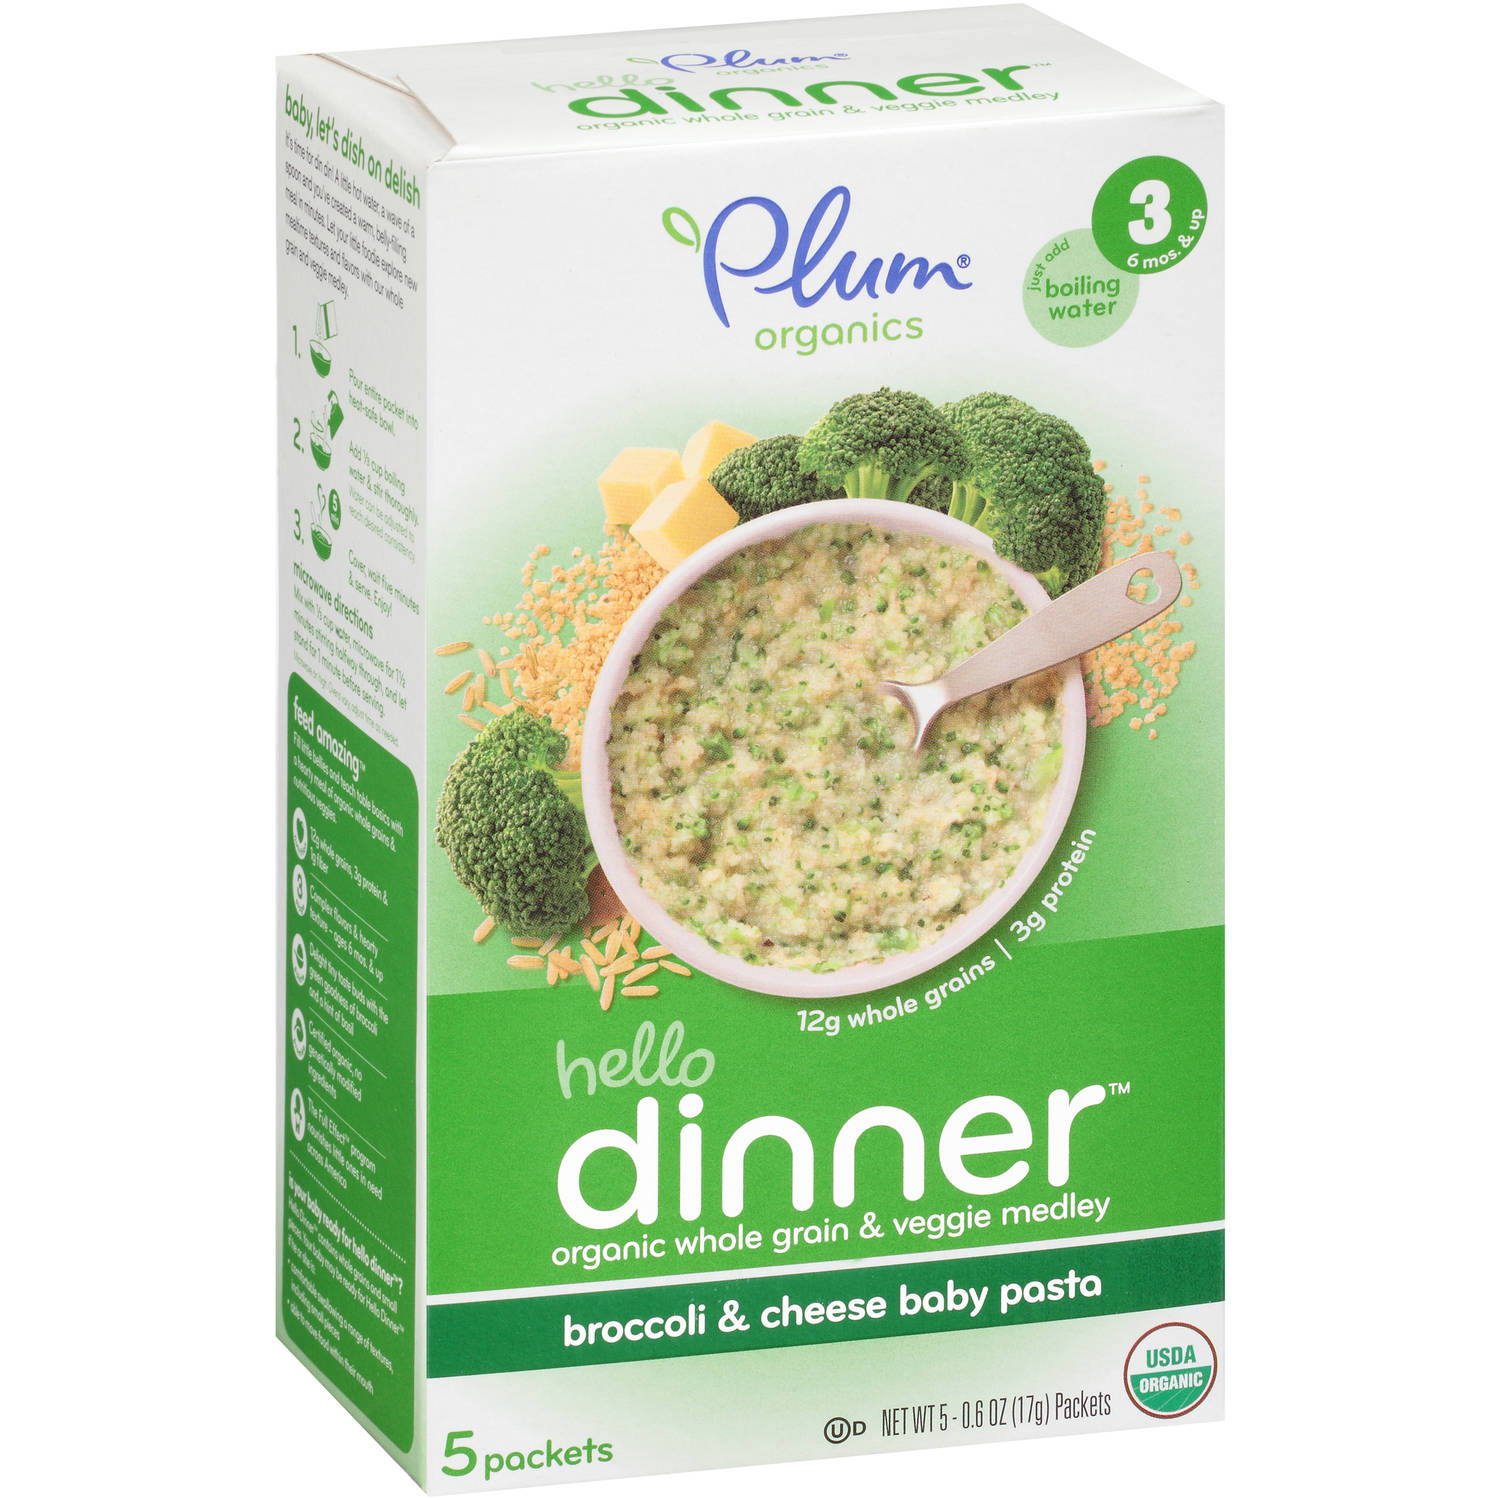 Plum Organics Hello Dinner Broccoli & Cheese Baby Pasta Stage 3 Baby Food, 0.6 oz, 5 count (Pack of 6)